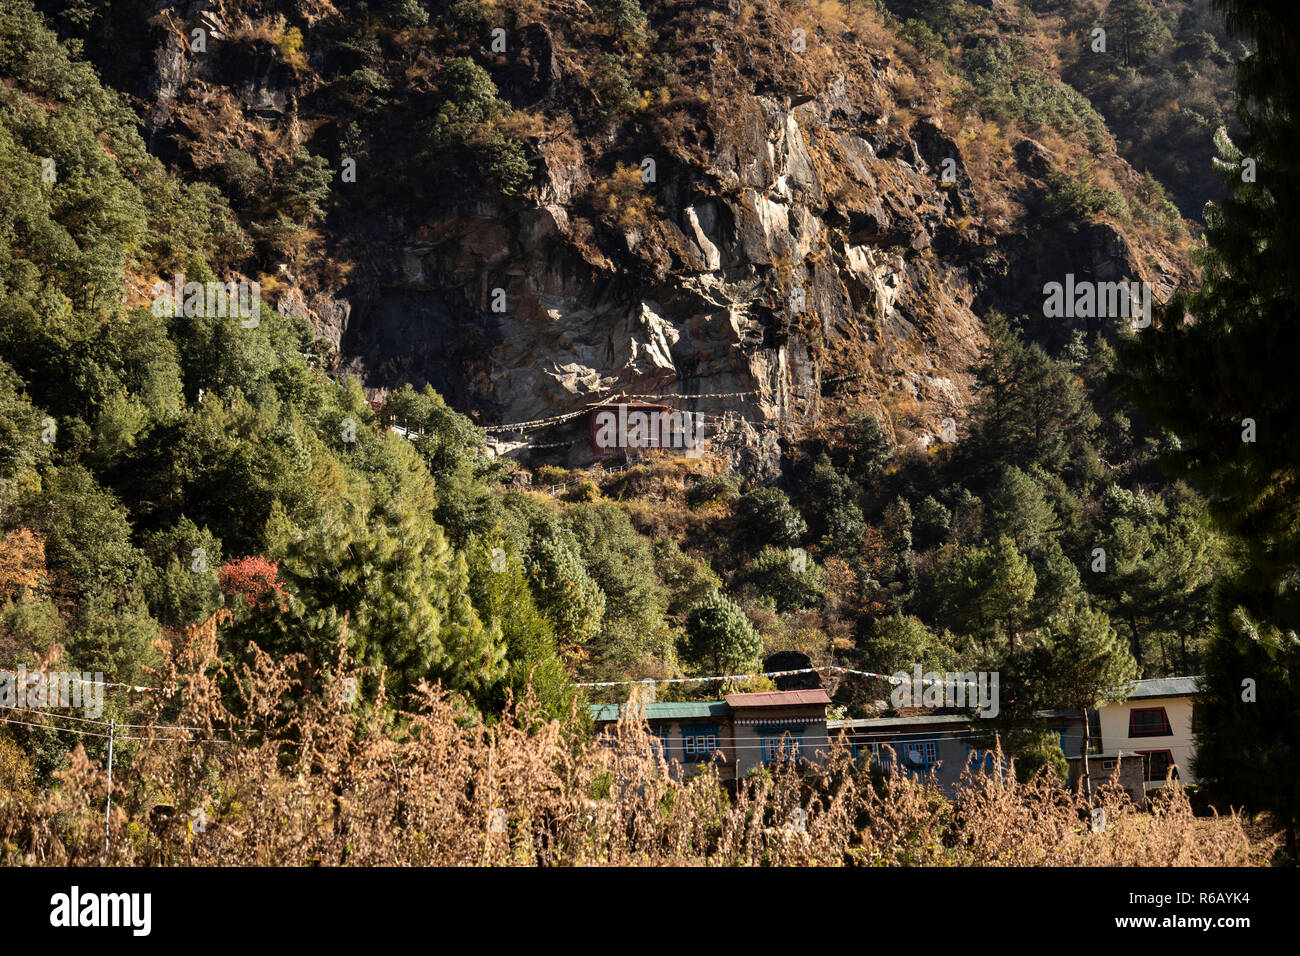 Nepal, Lukla, Chheplung, Rangdo Gompa, rock wall monastery located high on Cliffside at 2660m - Stock Image